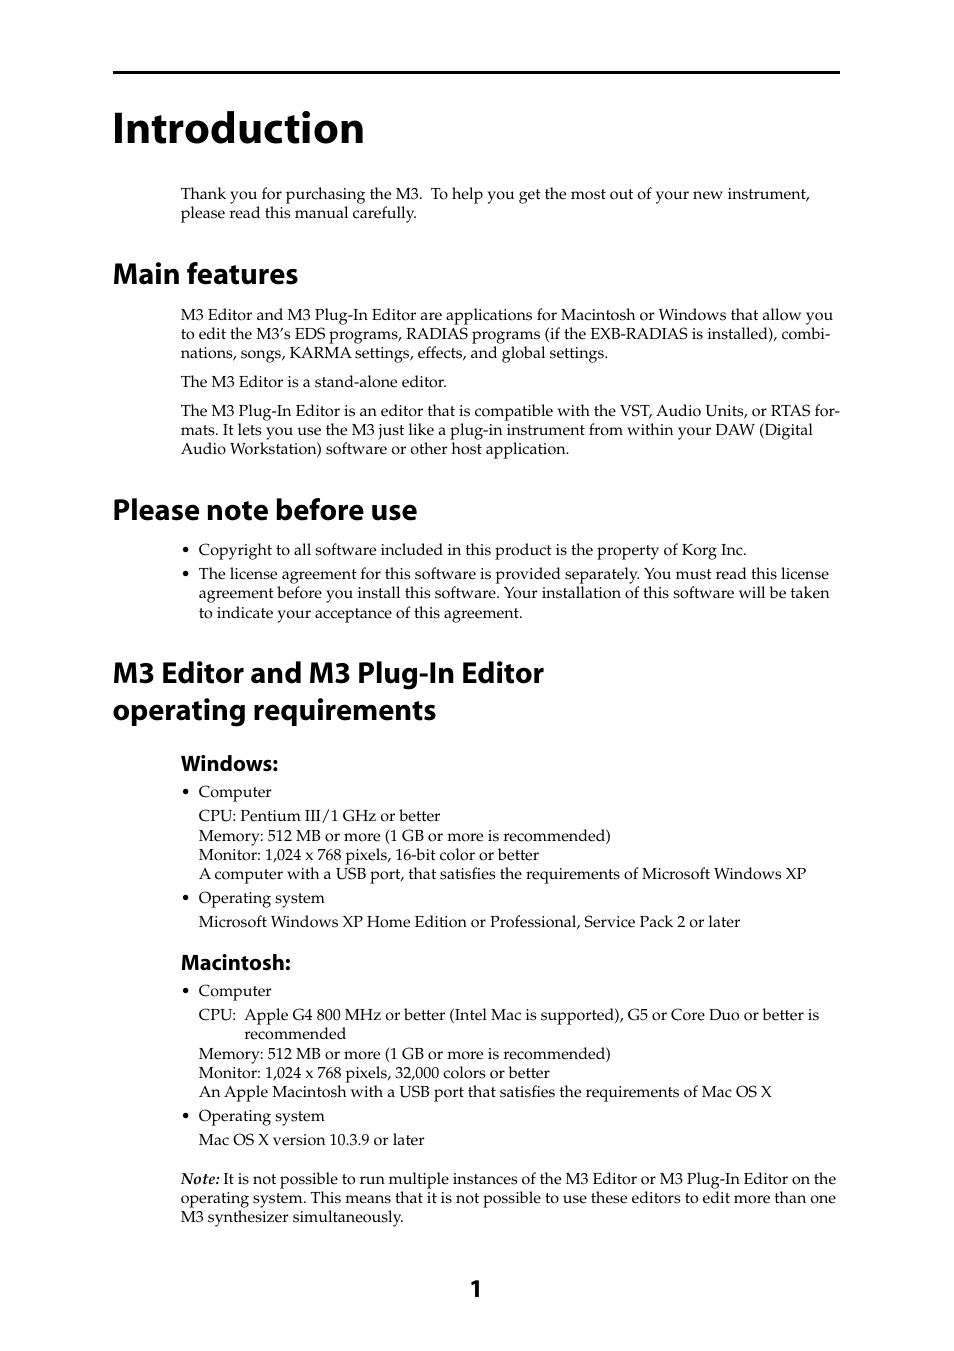 Introduction, Main features, Please note before use | KORG M3 User Manual |  Page 3 / 32